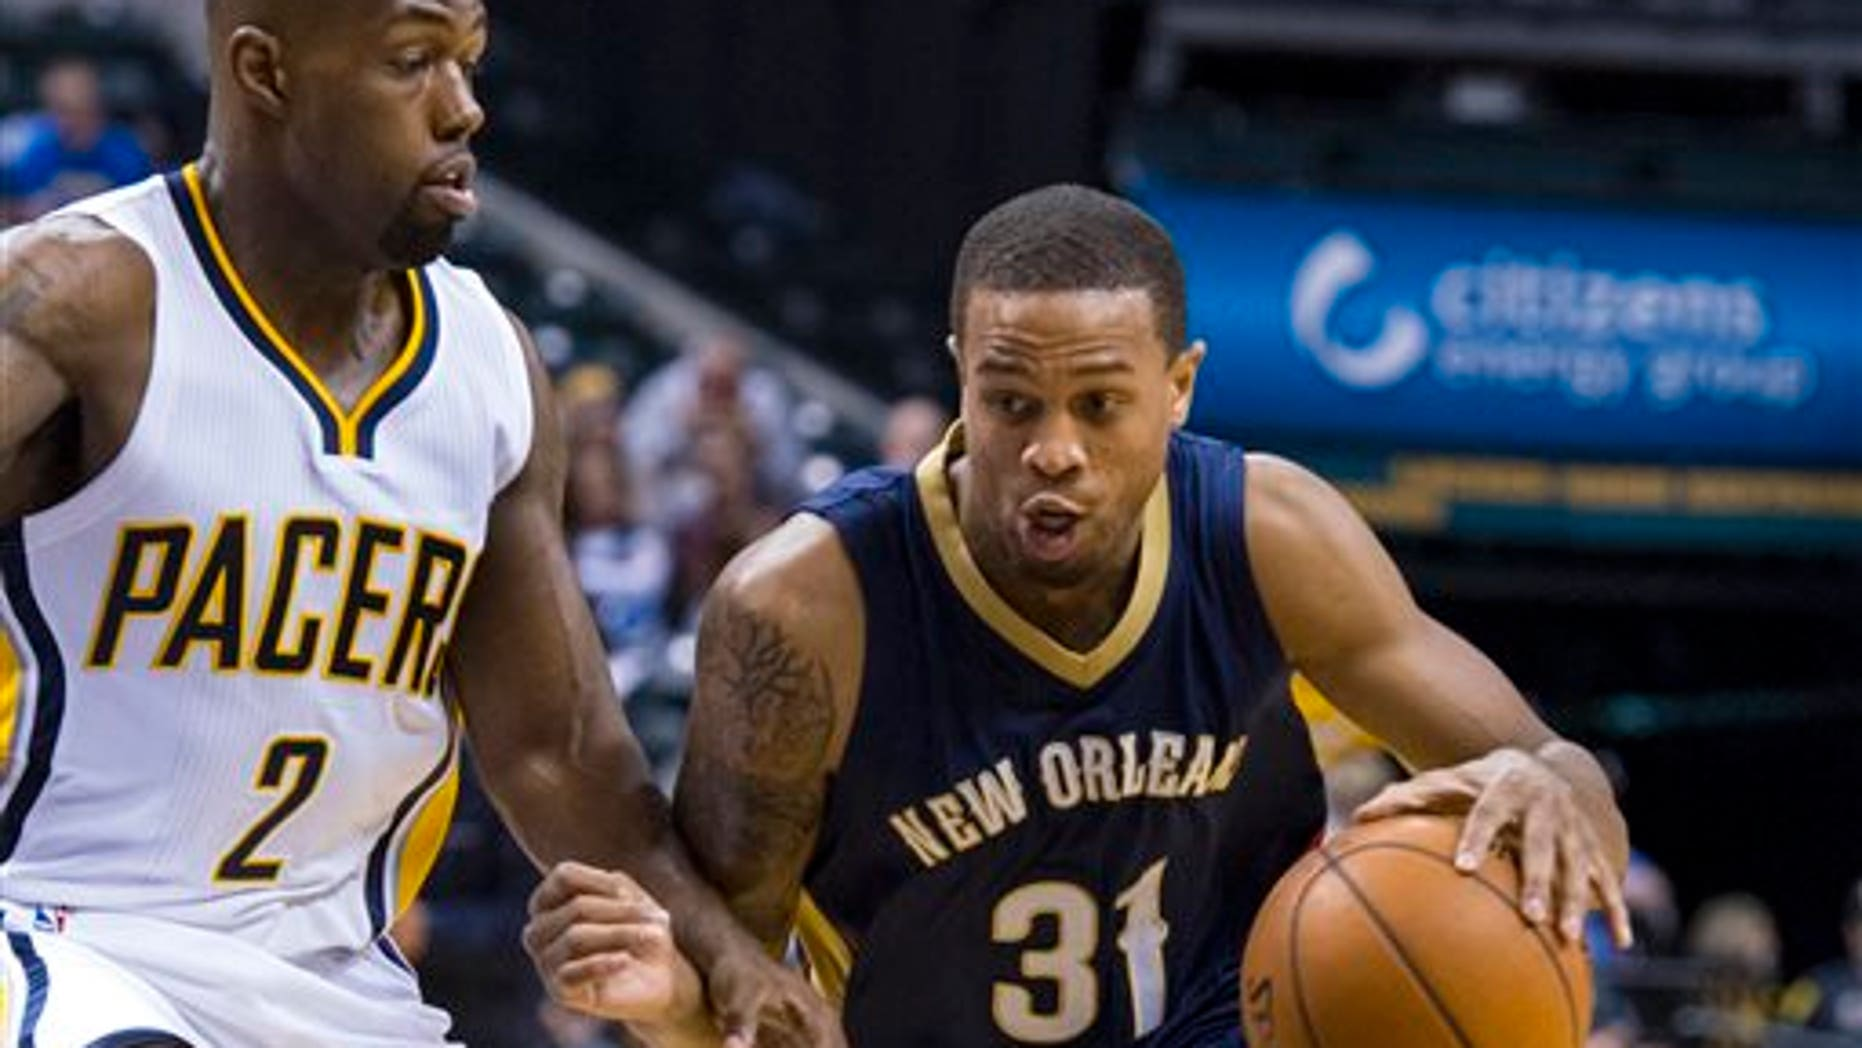 New Orleans Pelicans guard Bryce Dejean-Jones (31) was fatally shot after breaking down the door to a Dallas apartment, authorities said Saturday.